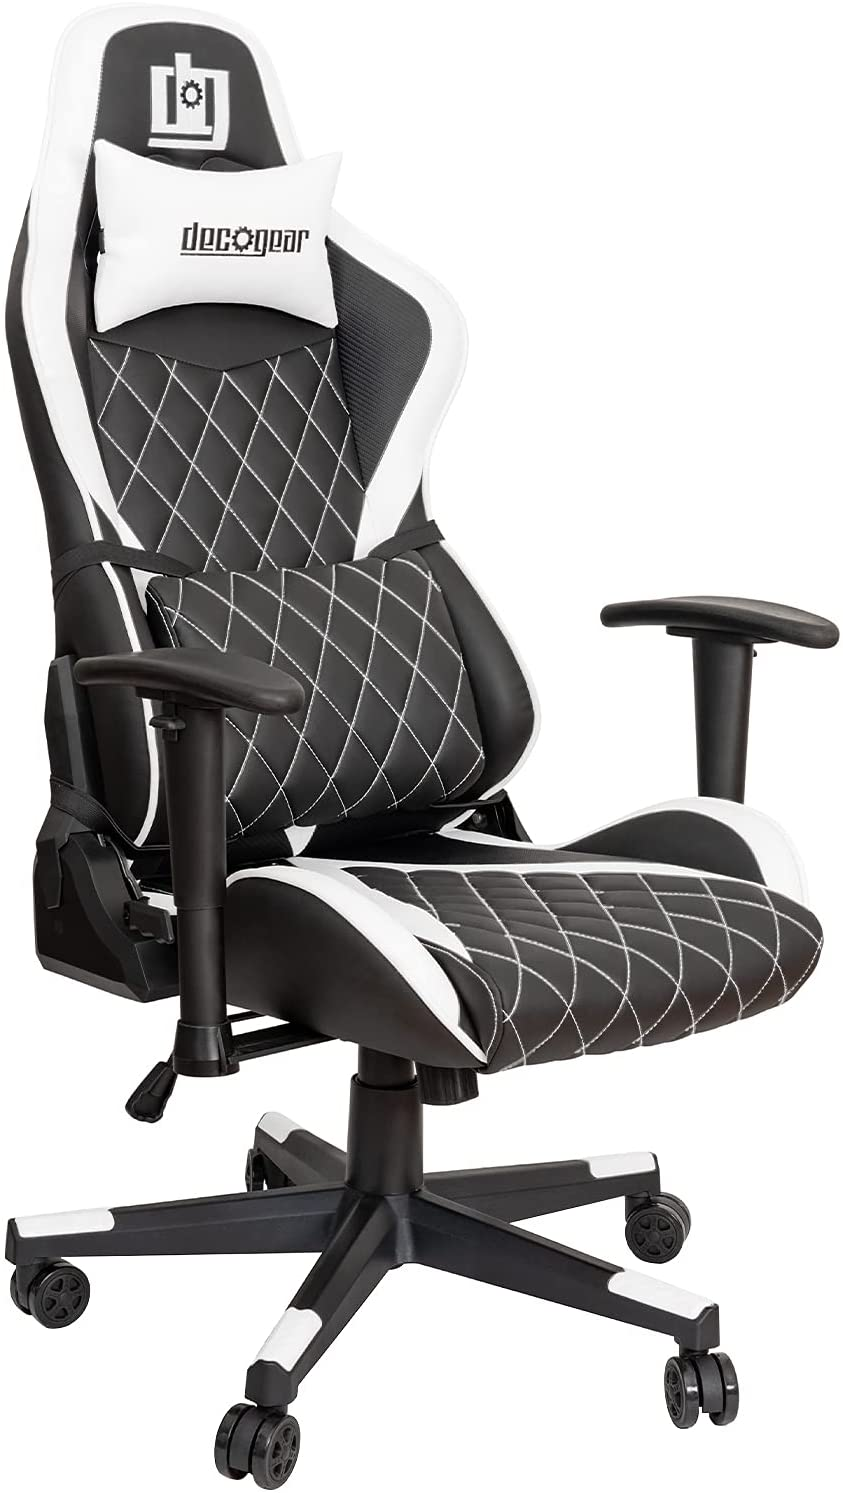 Deco Gear Diamond Quilted Ergonomic Gaming Chair